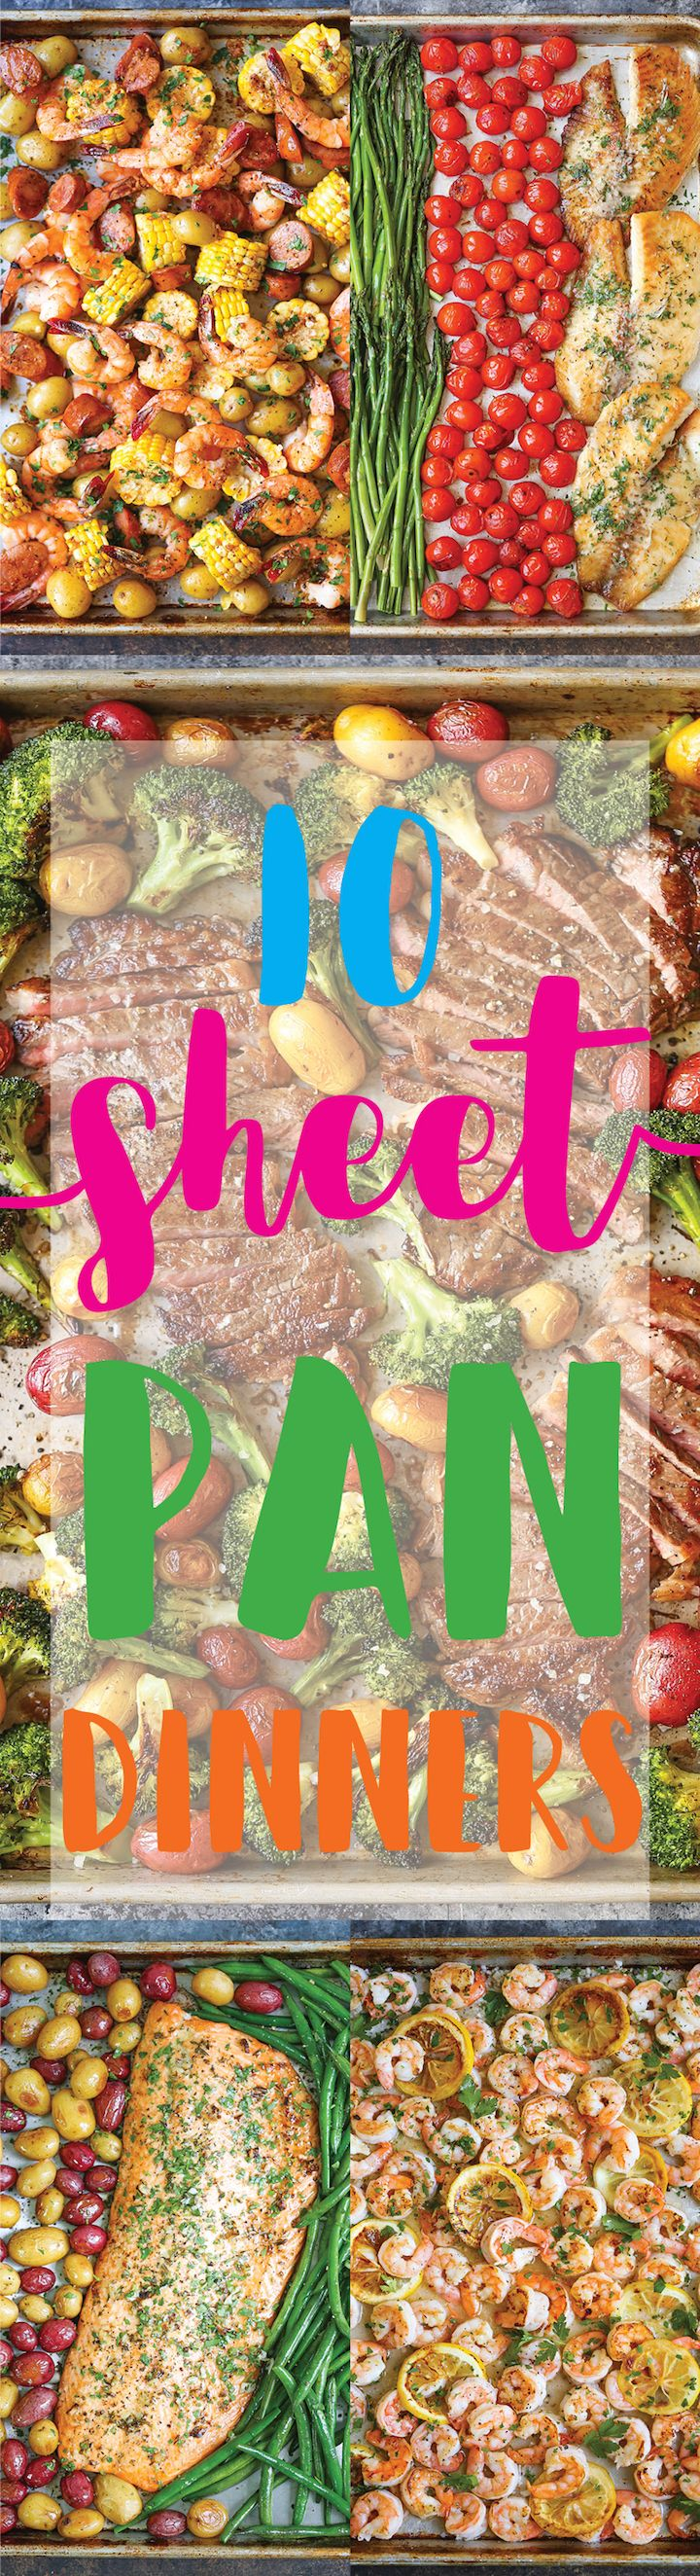 10 Sheet Pan Dinners - Speedy, family-friendly, no-brainer dinners you need to make tonight! These dinners are so easy to make and clean up is a breeze! (Baking Salmon Teriyaki)